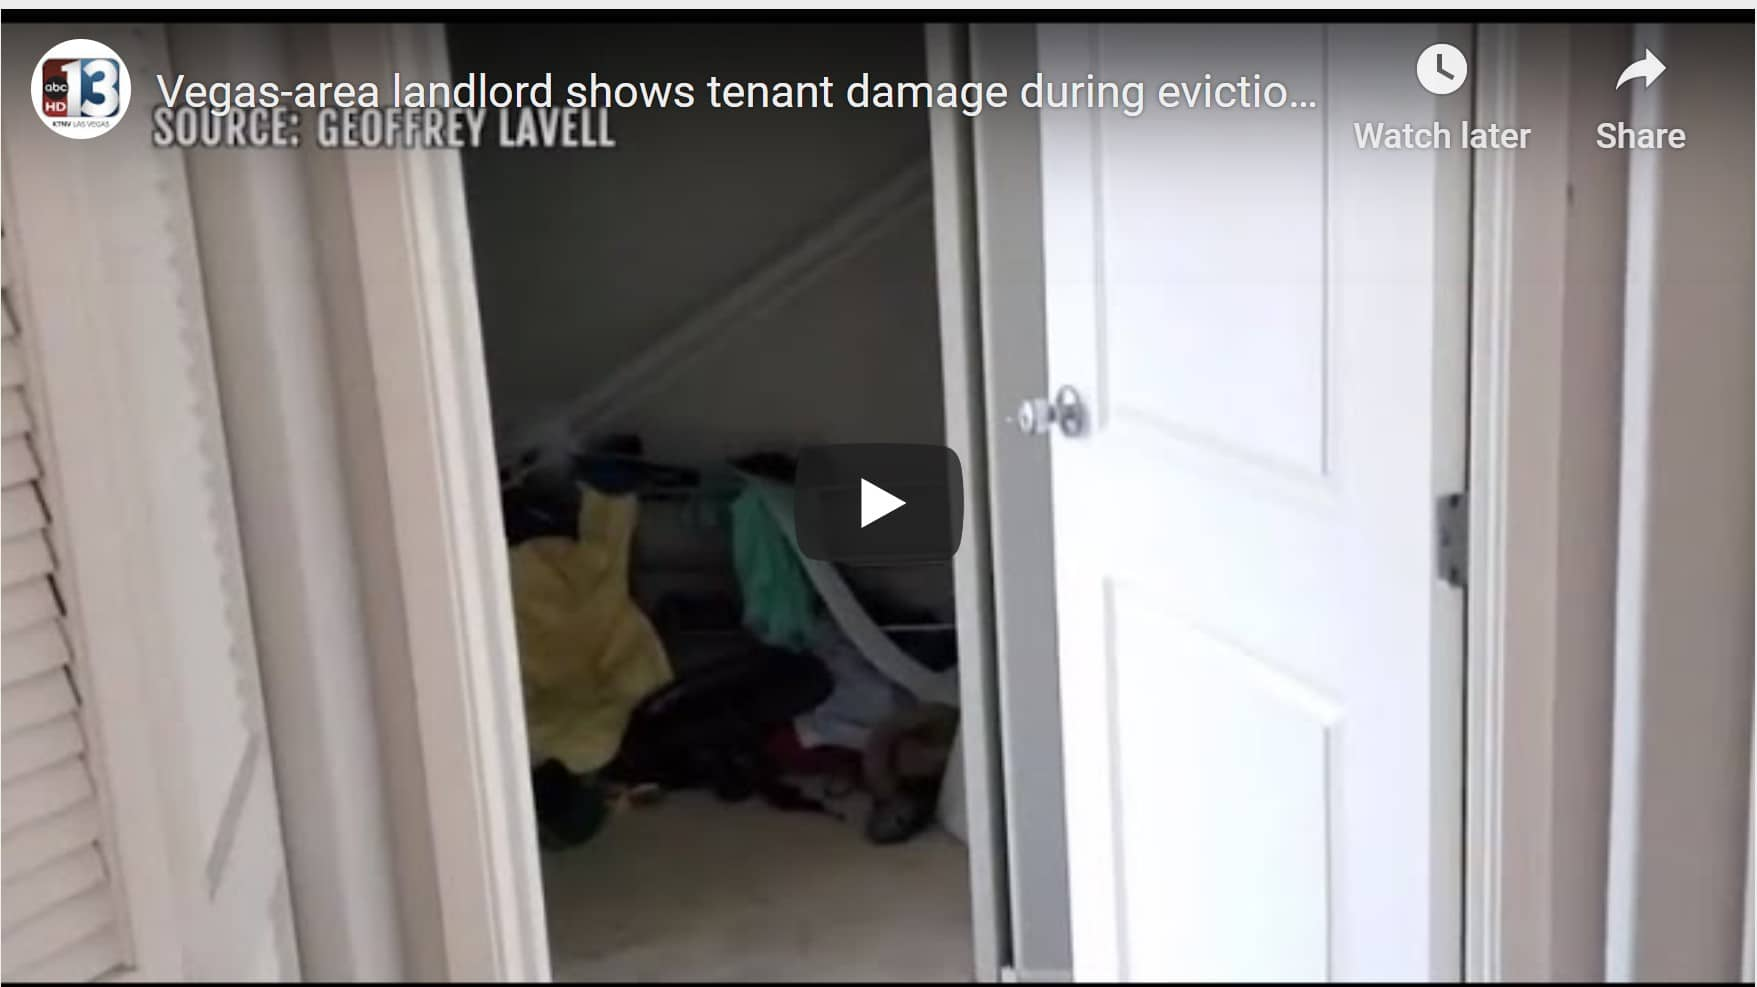 Vegas-area landlord shows tenant damage during eviction moratorium